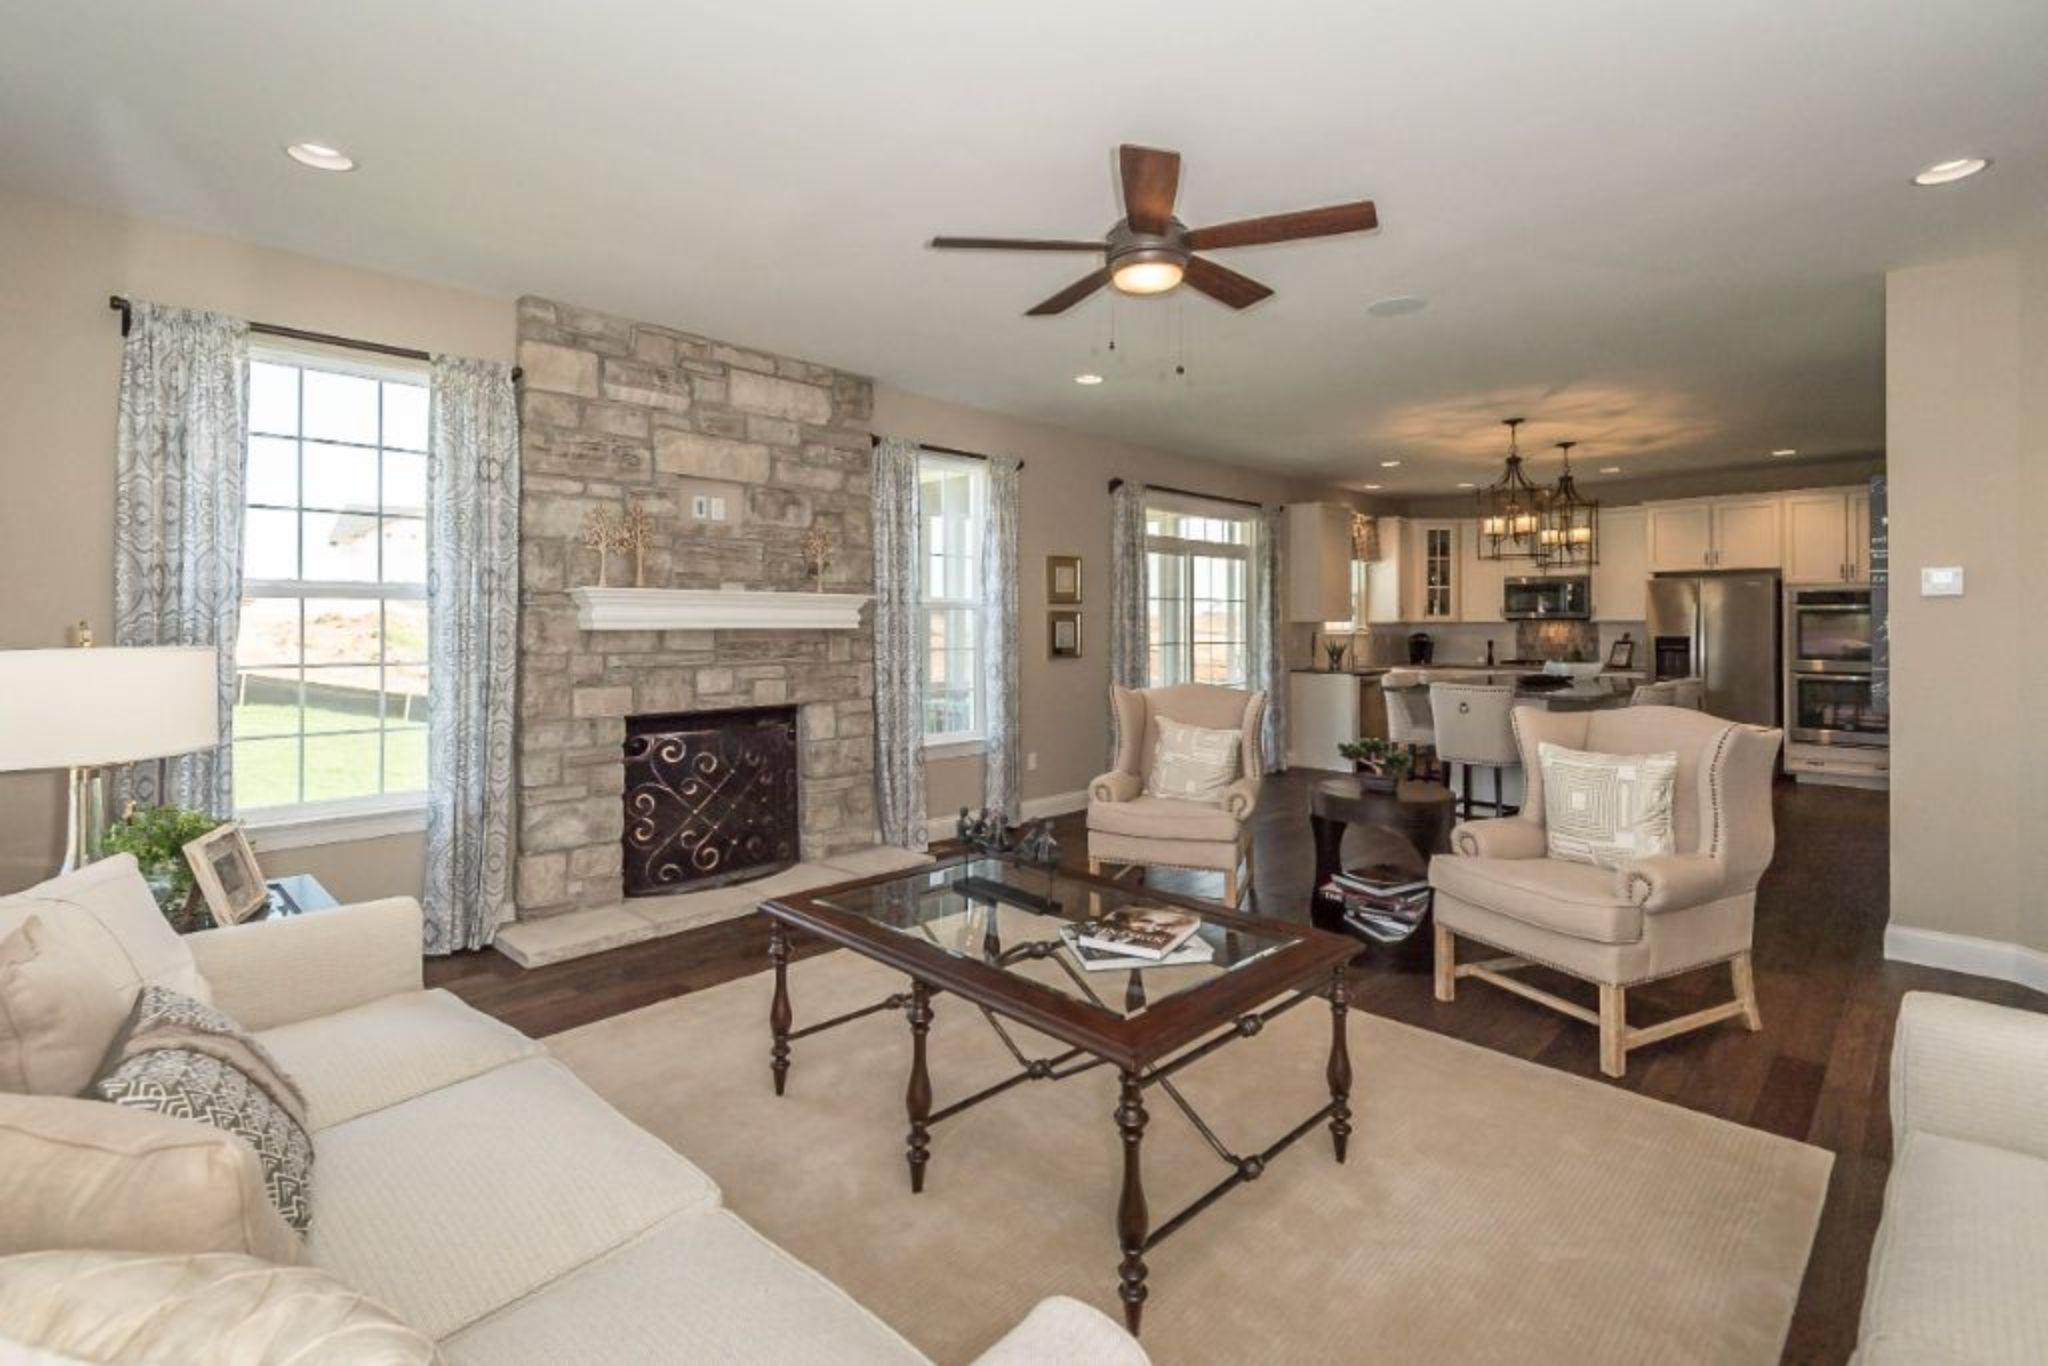 Living Area featured in the Fairfax By Payne Family Homes LLC in St. Louis, MO